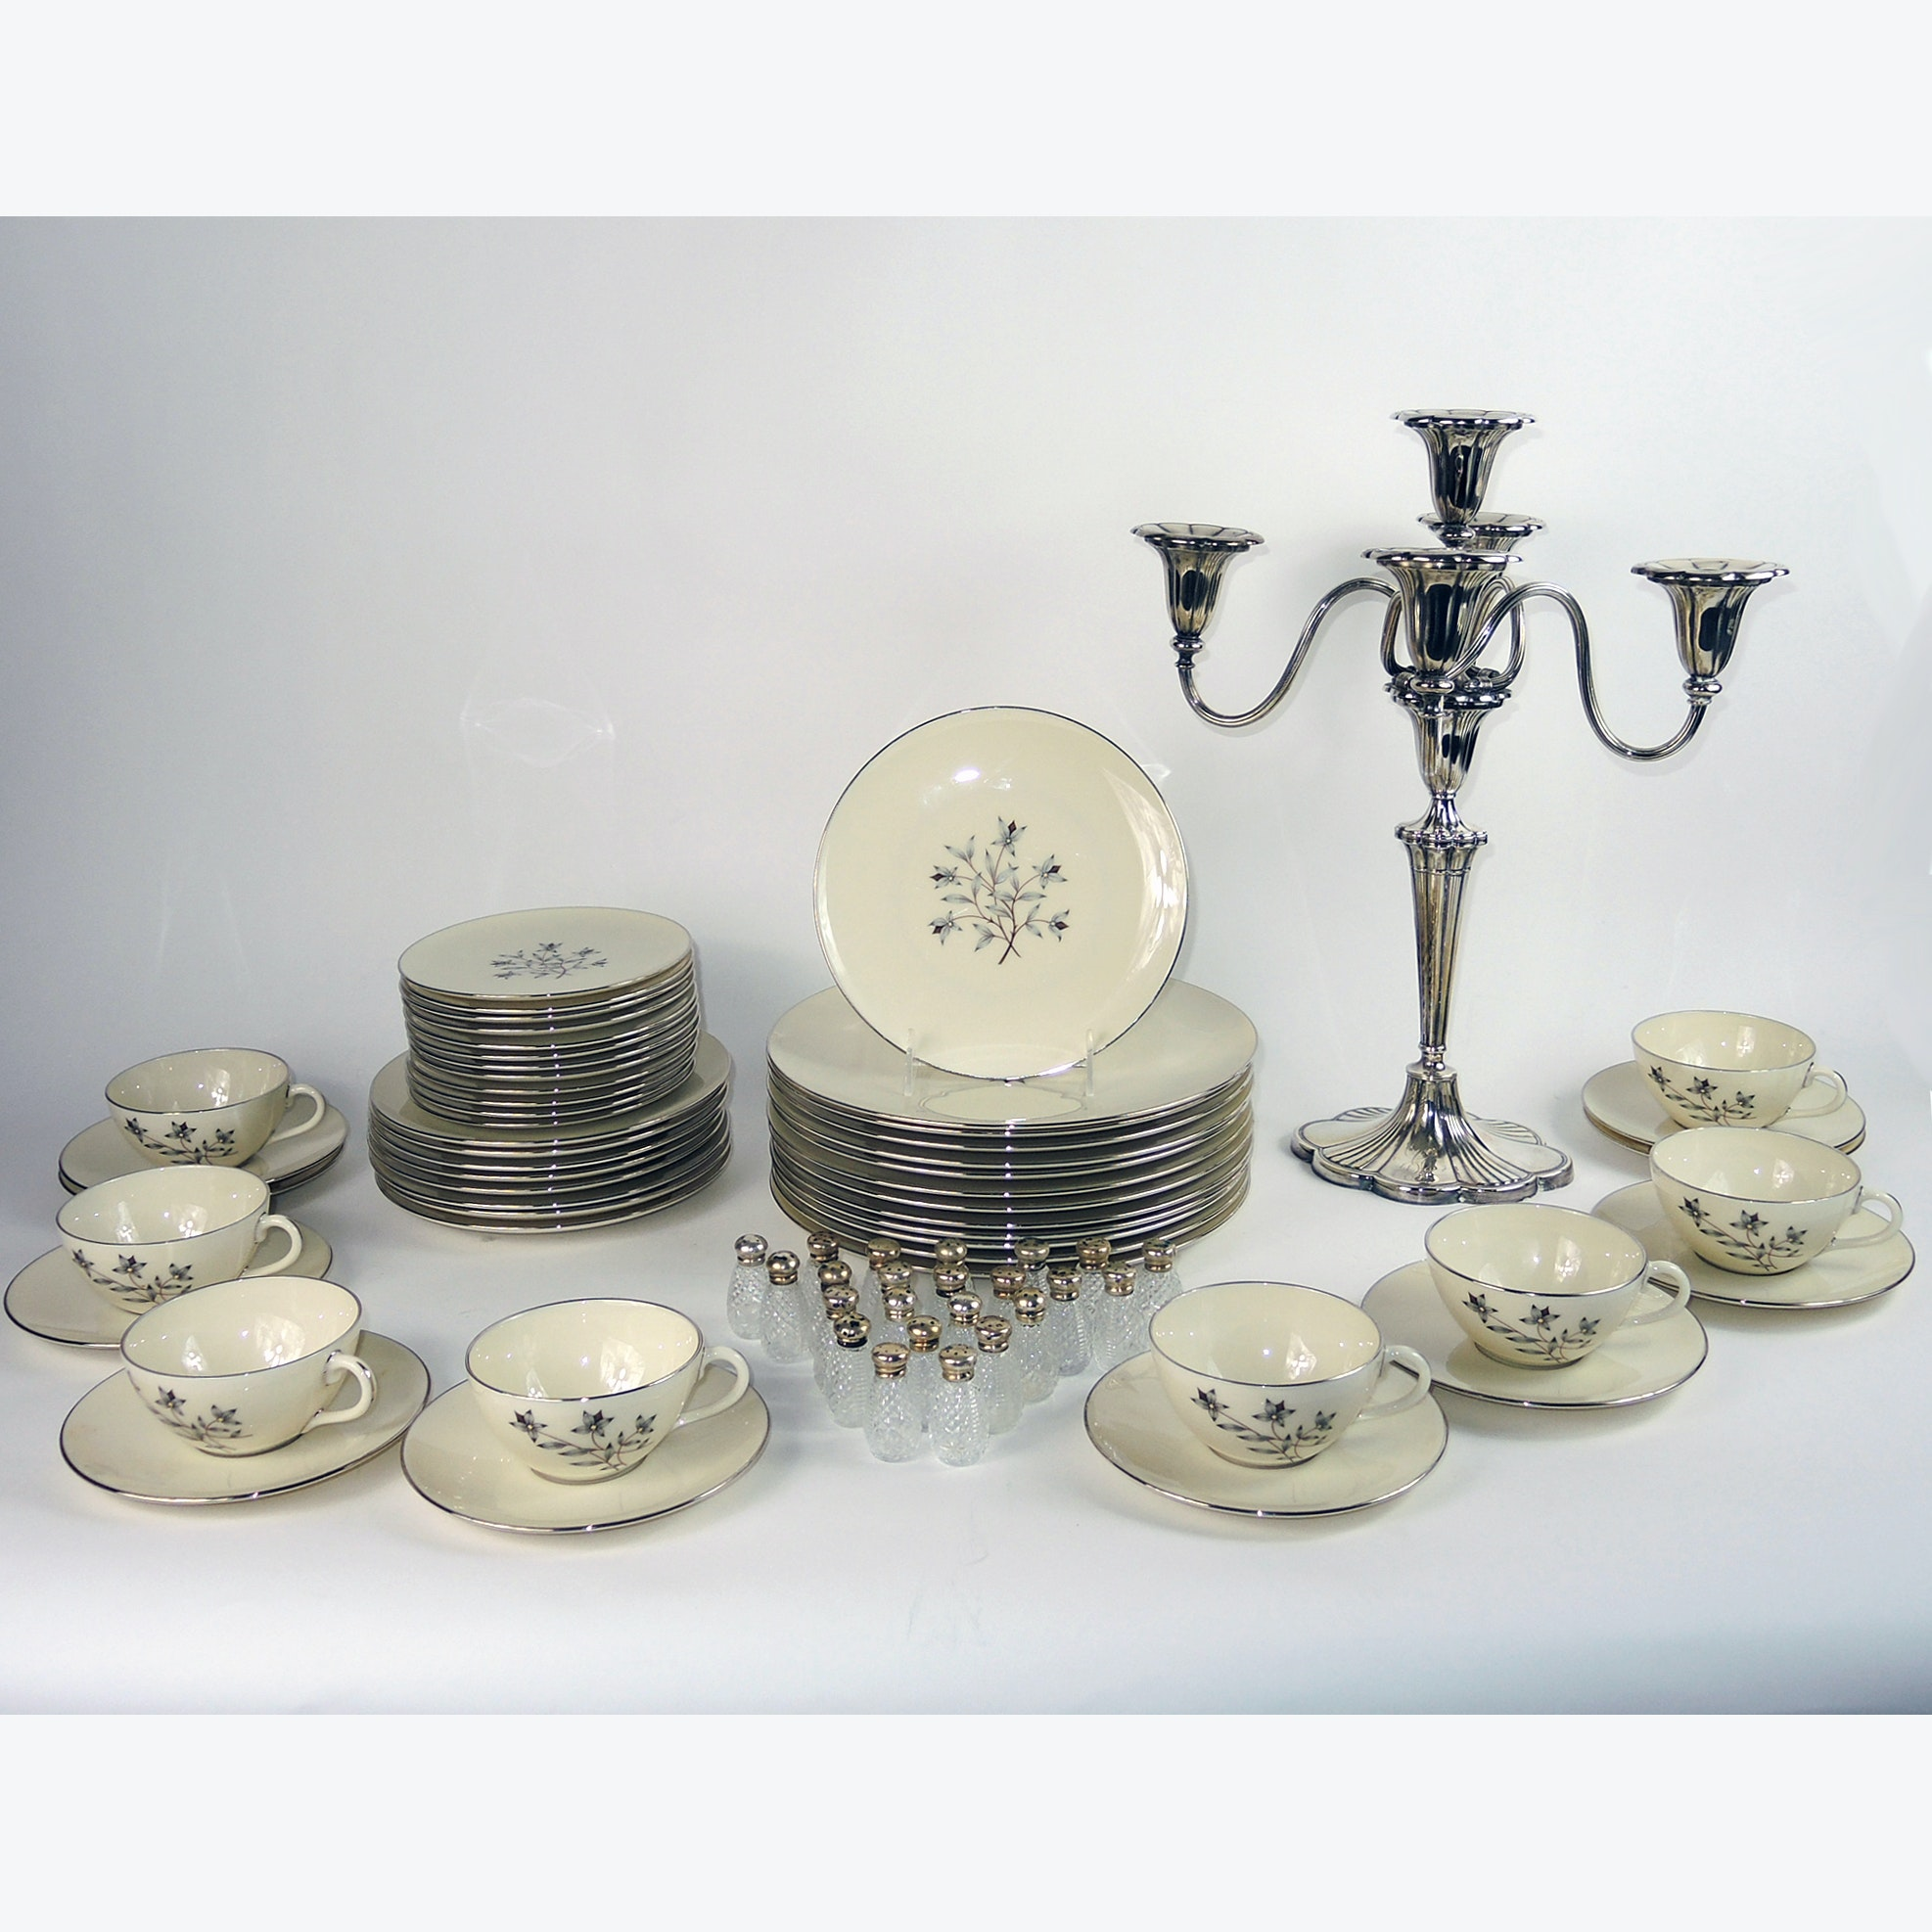 Lenox China, Sterling and Glass Salt and Pepper Shakers and More